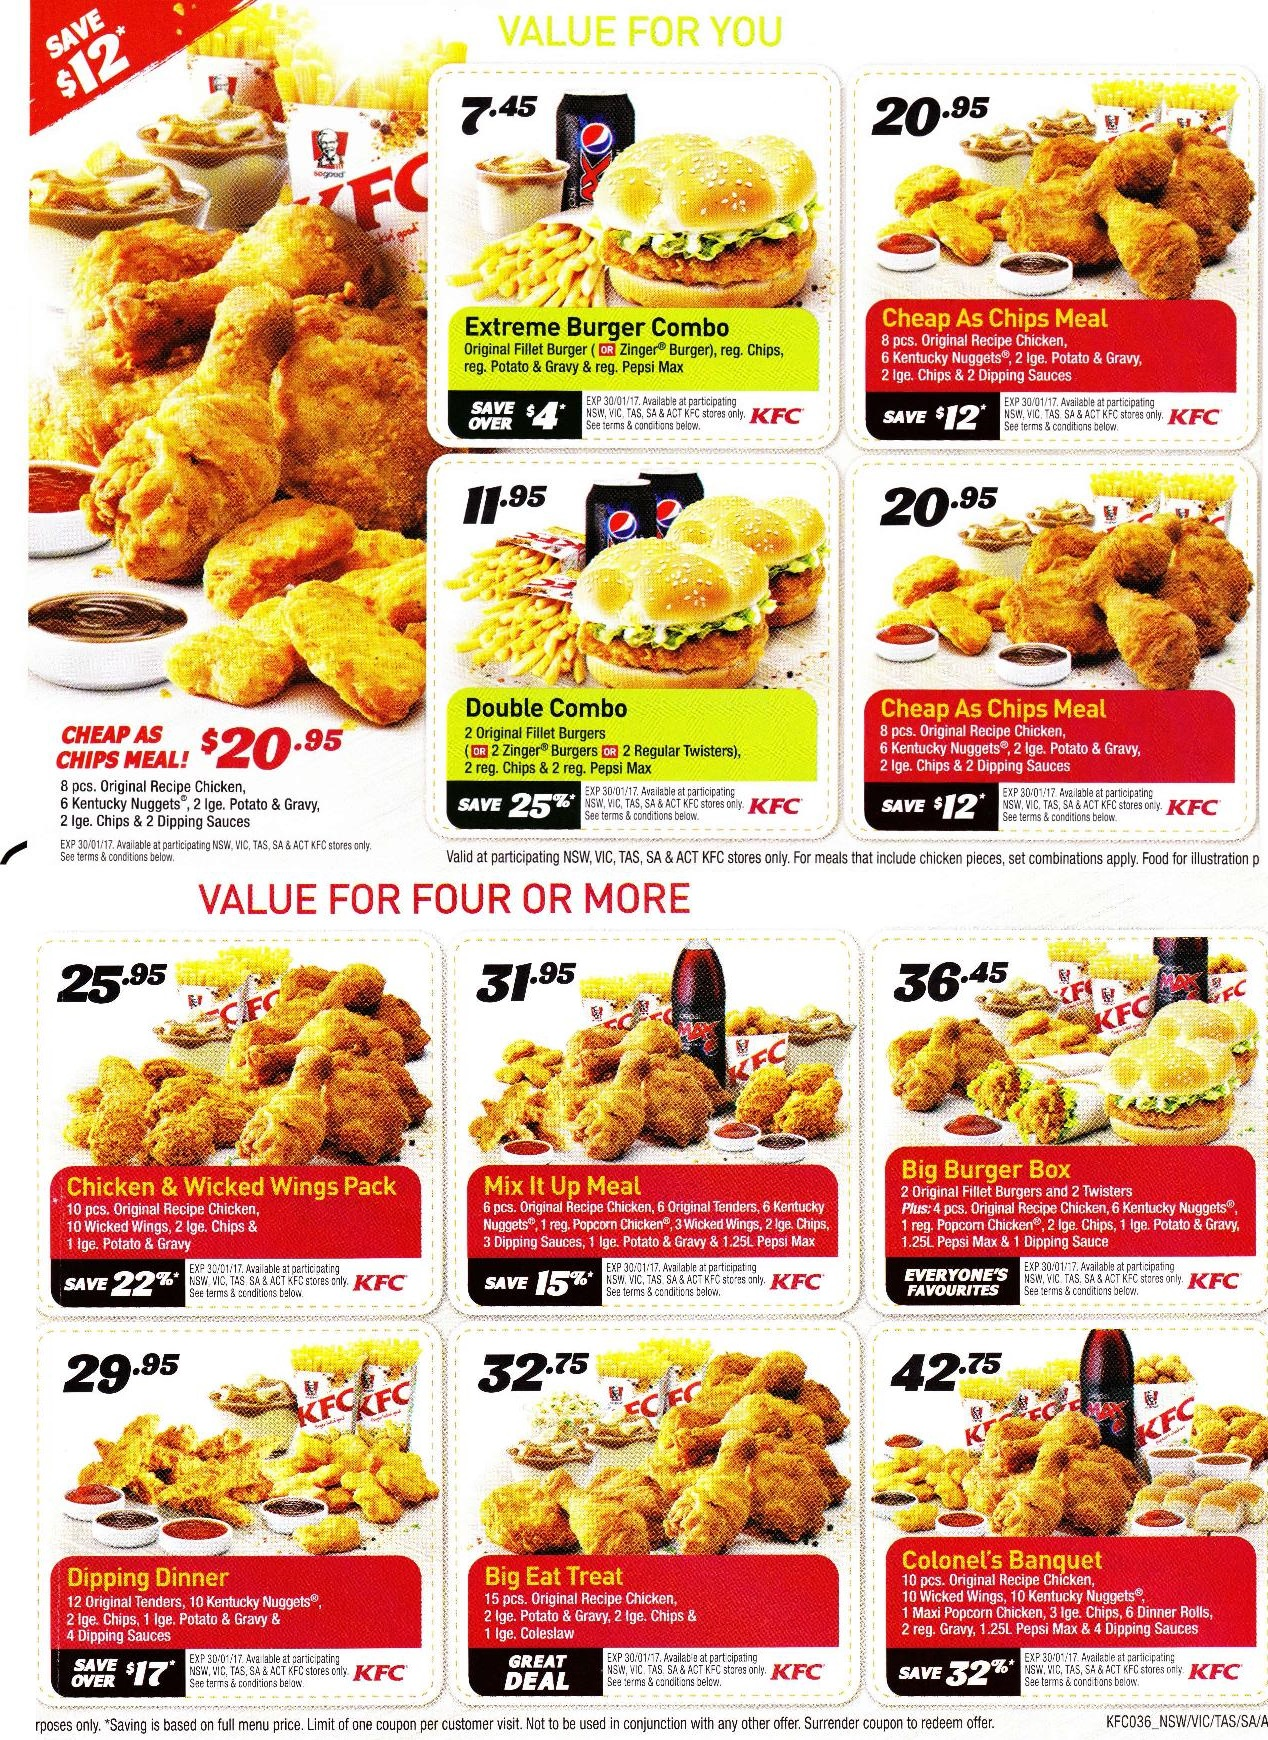 KFC Coupons. Add Favorite. Submit a Coupon. Submit a new coupon and help others save! Get the 5 Hot Wings Combo for Just $! Valid through 12/22/ May need to print out coupon and take to your nearest KFC location. Not valid in Alaska, Hawaii, or Puerto Rico. including KFC, in the Best of RetailMeNot emails. Please enter a valid.